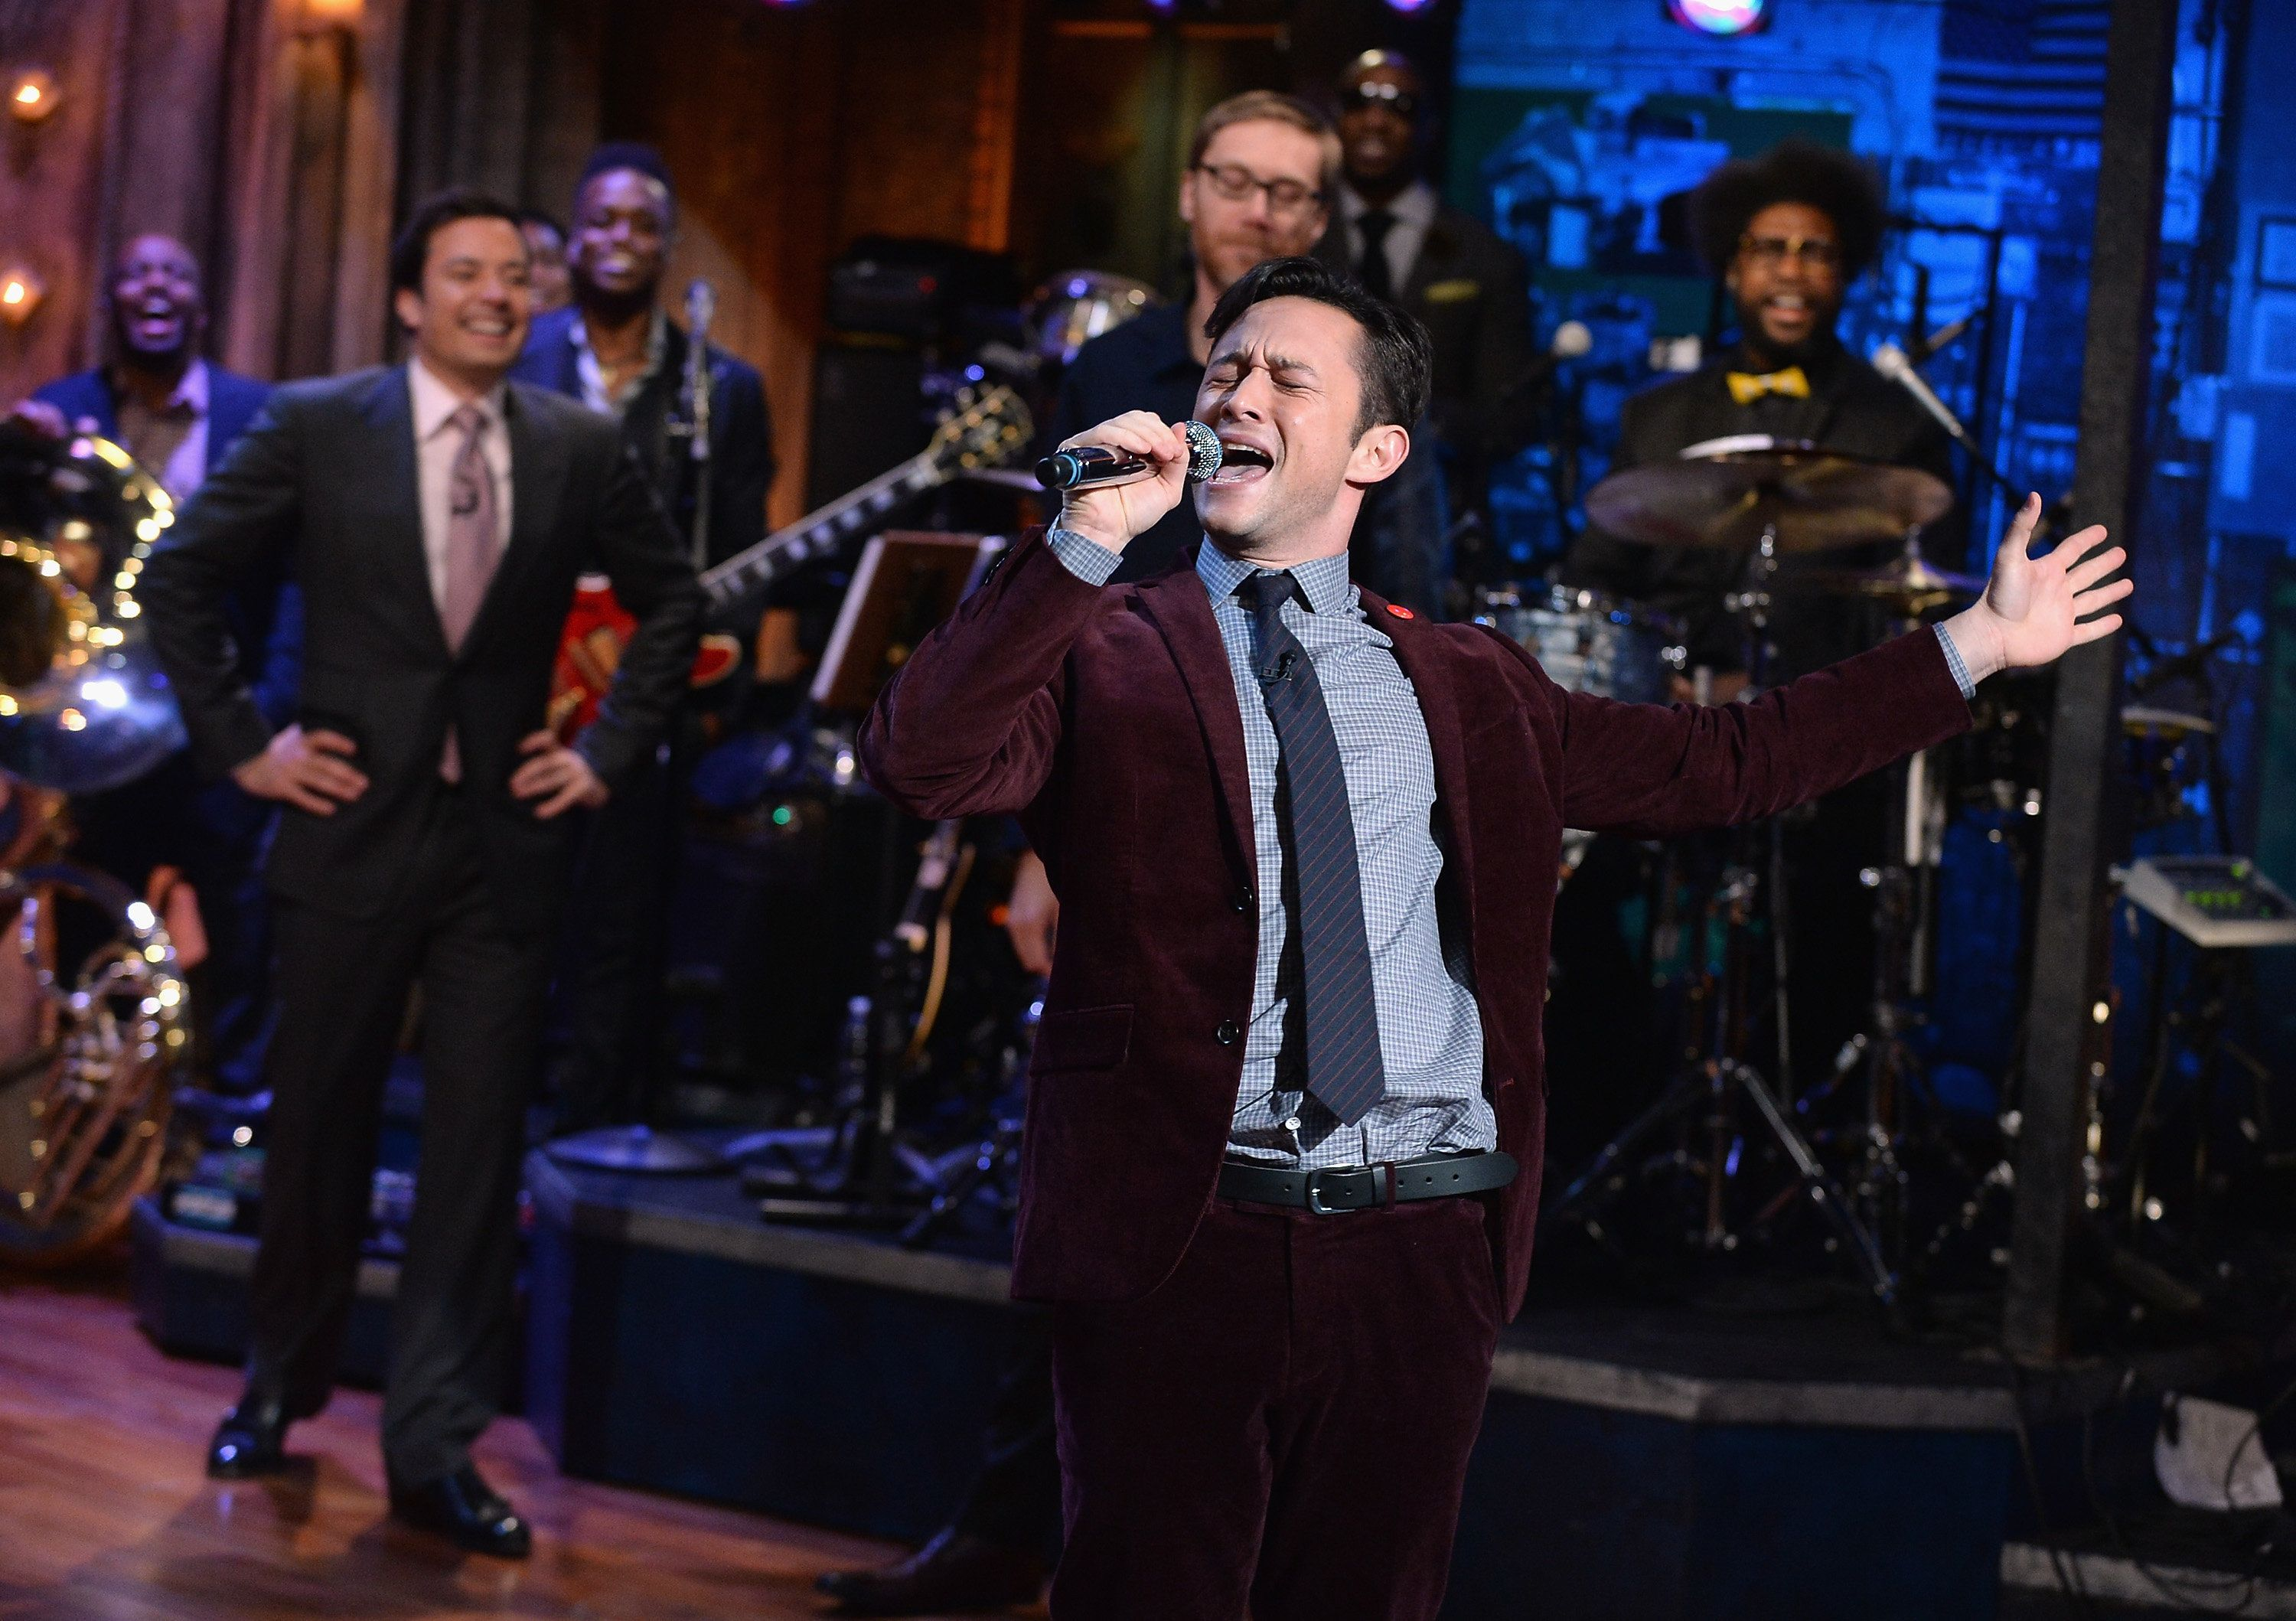 NEW YORK, NY - SEPTEMBER 24:  Joseph Gordon-Levitt, Stephen Merchant and Jimmy Fallon have a Lip-synching contest during a taping of 'Late Night With Jimmy Fallon' at Rockefeller Center on September 24, 2013 in New York City.  (Photo by Theo Wargo/Getty Images)